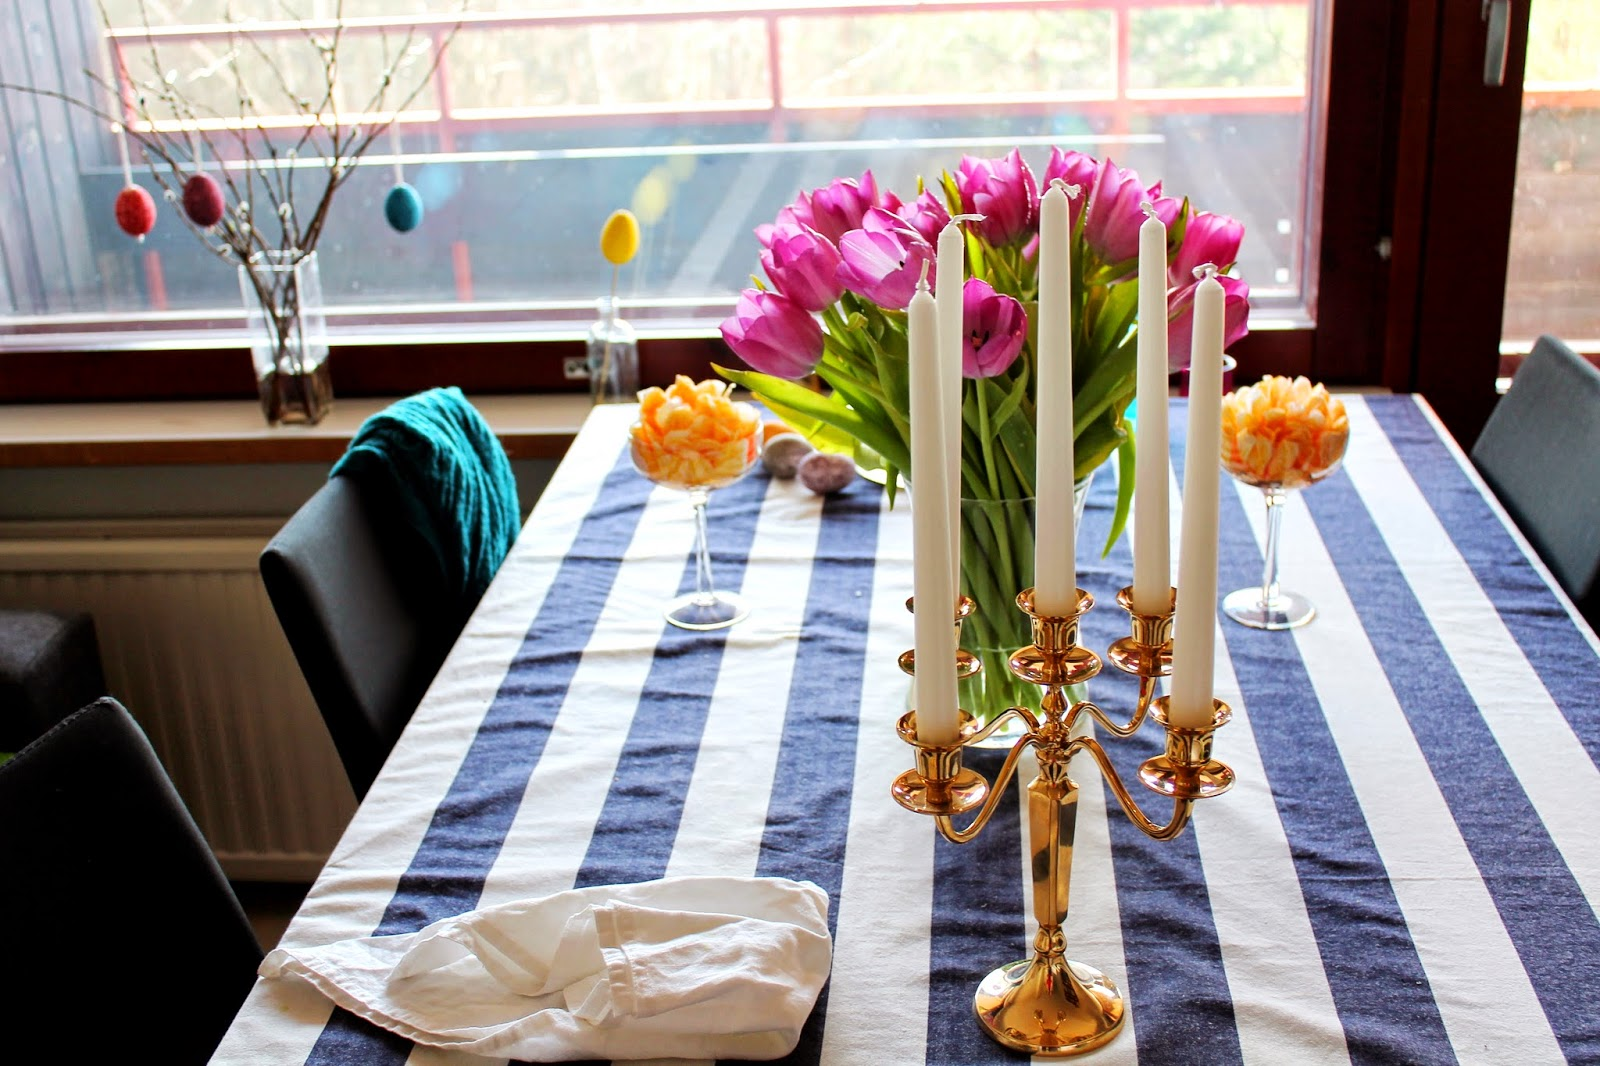 tablescape with Lexington striped tablecloth, candles and flowers